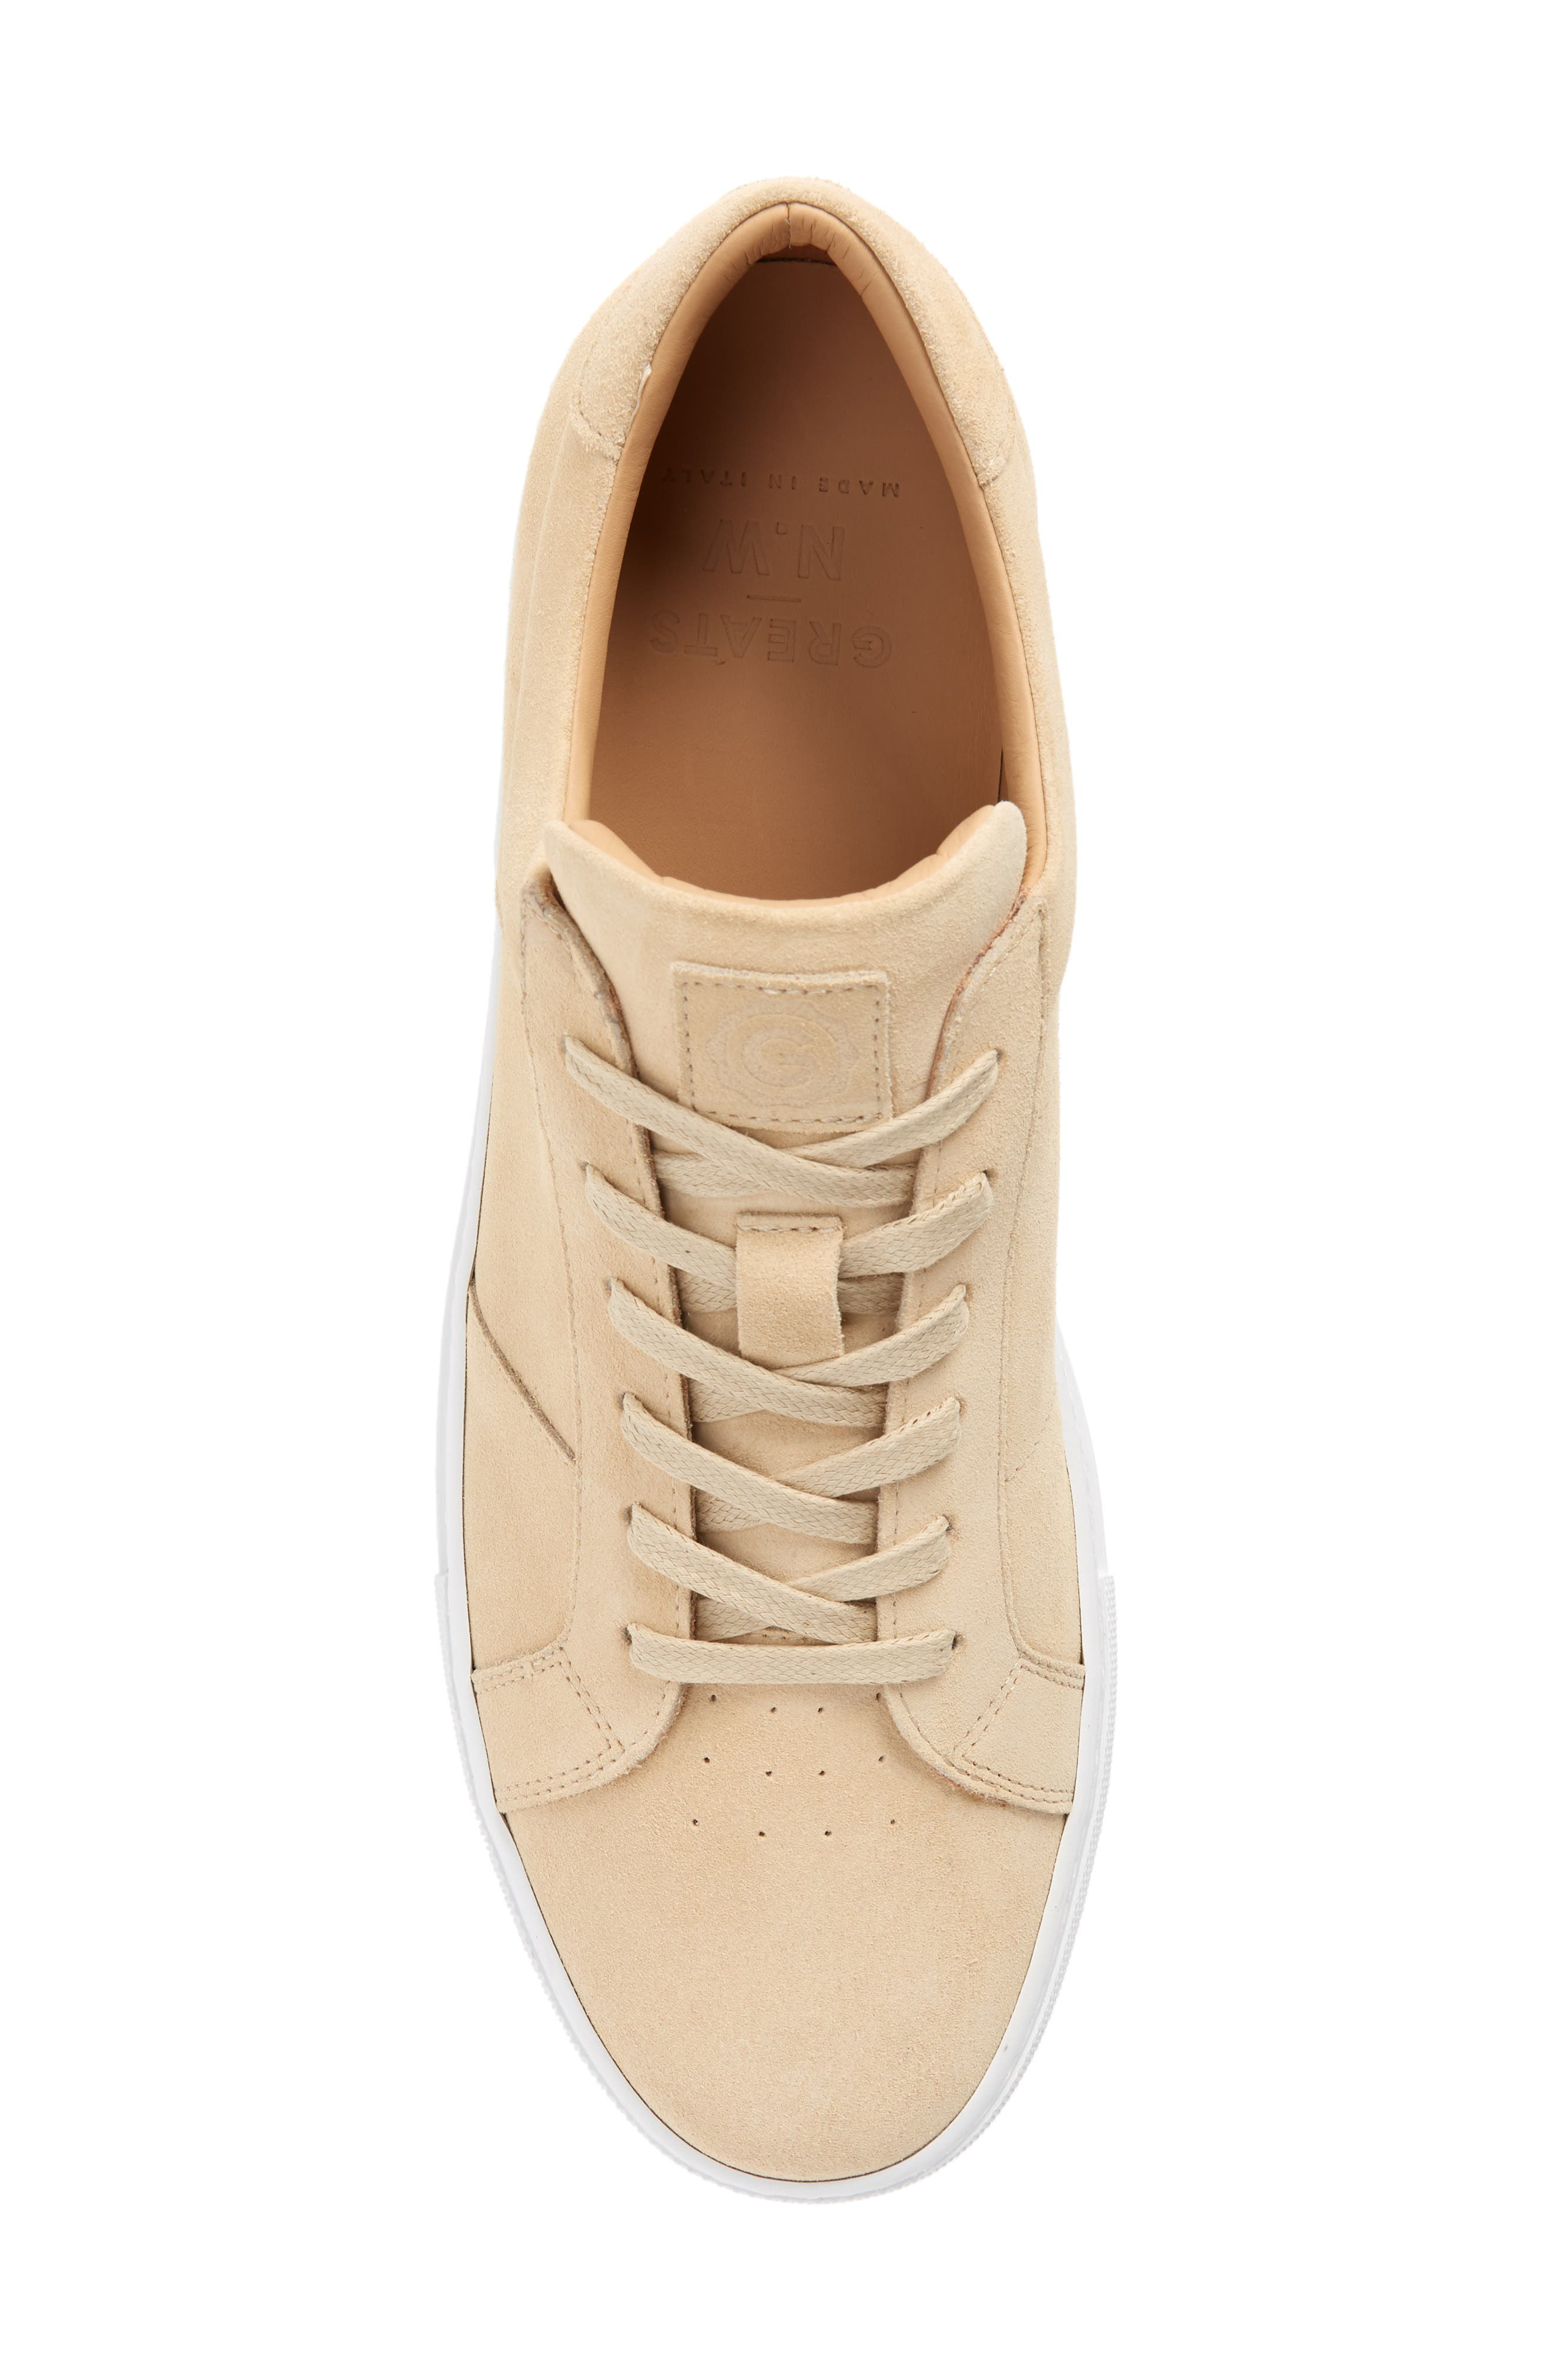 Nick Wooster x GREATS Royale Sneaker,                             Alternate thumbnail 5, color,                             250